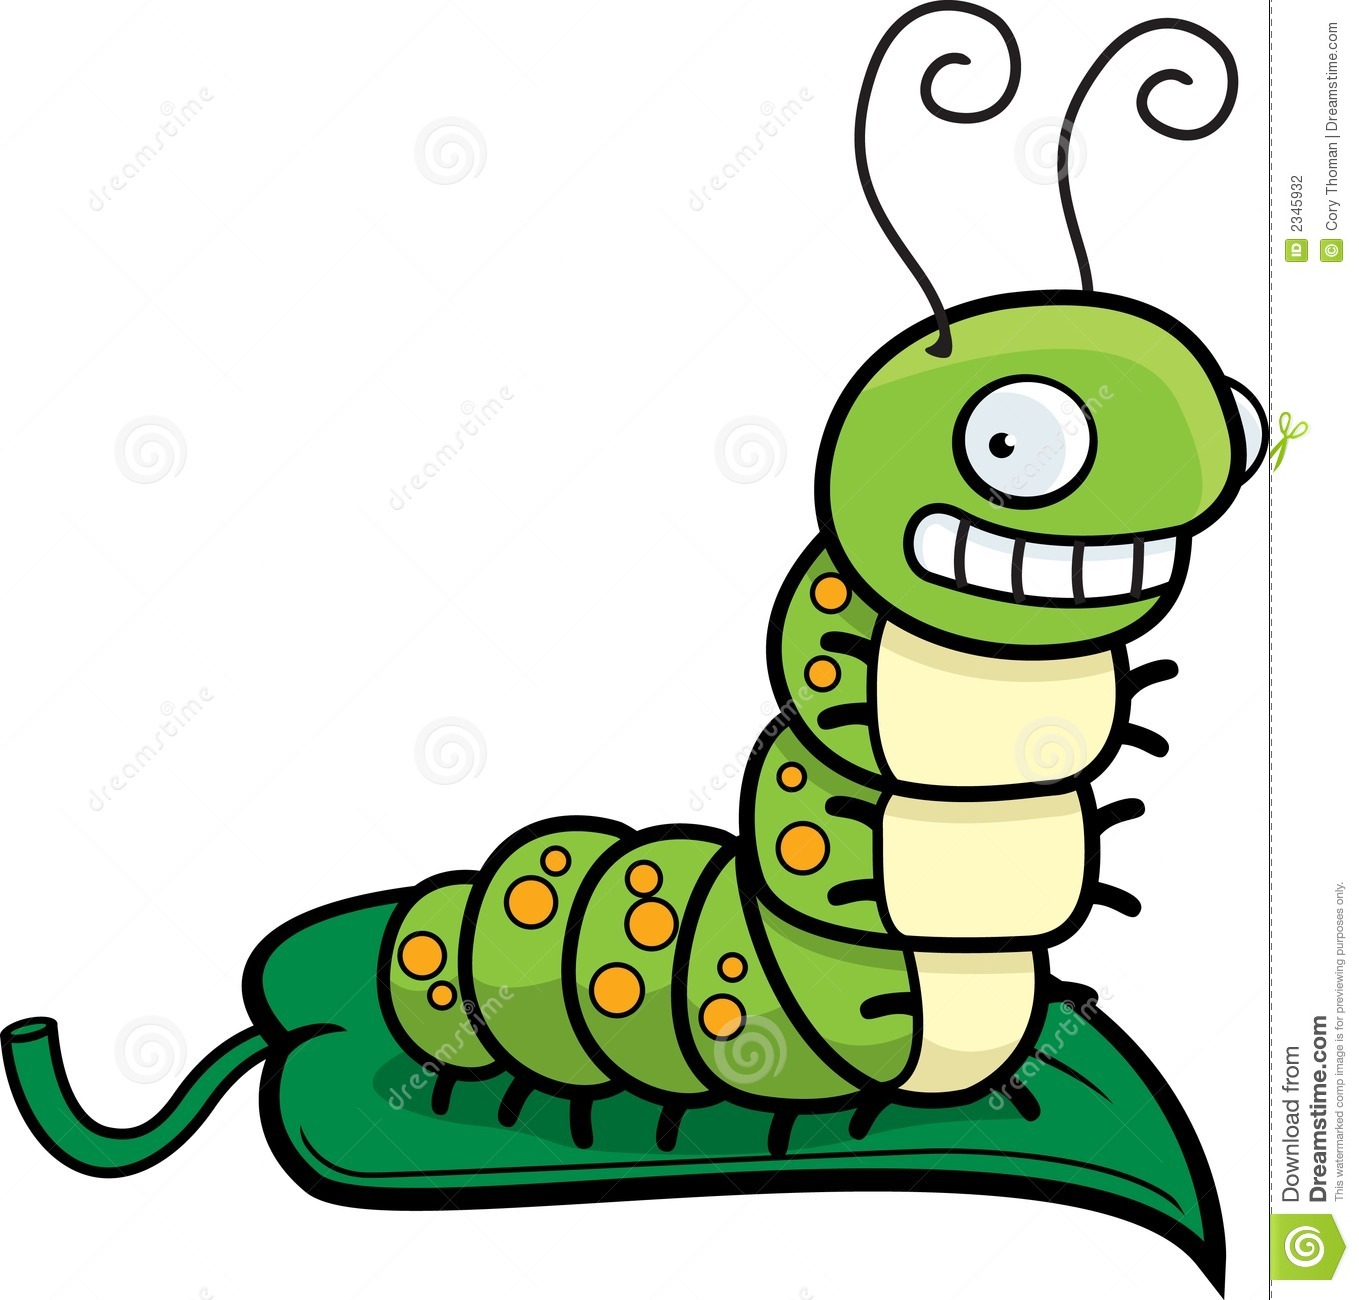 caterpillar clipart clipart panda free clipart images rh clipartpanda com clipart caterpillar butterfly clipart caterpillar head